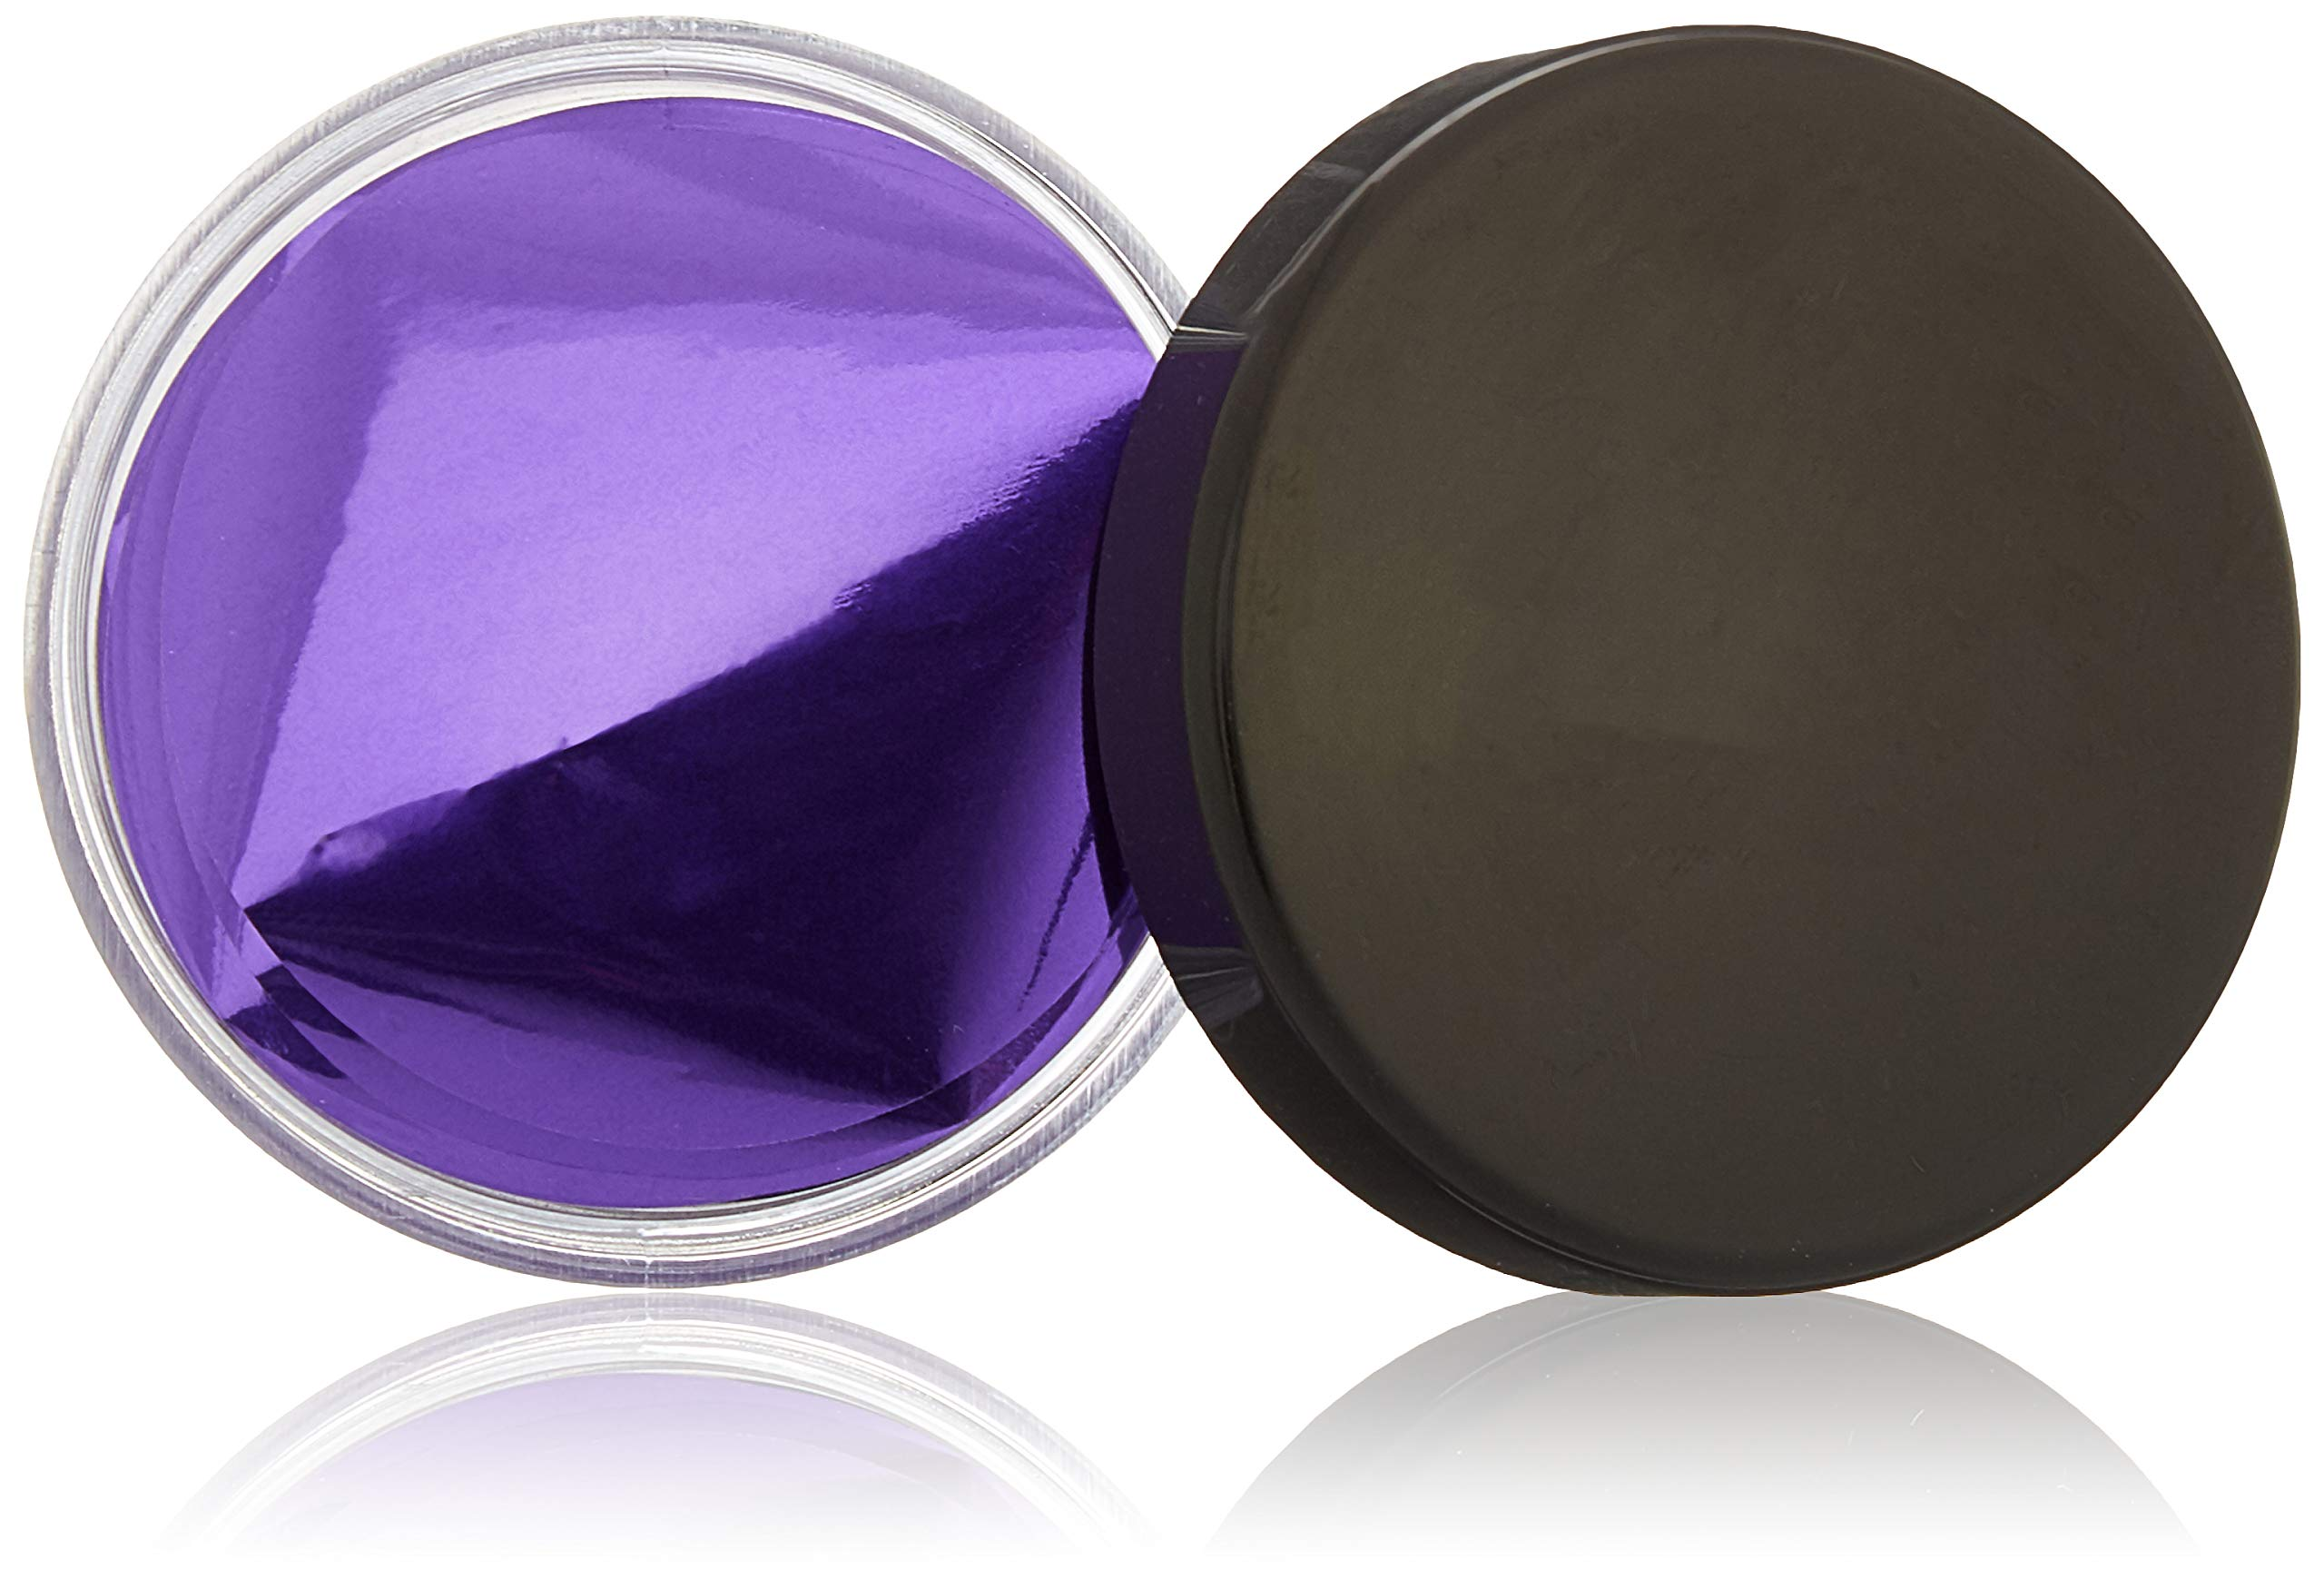 Mettoo Imperial Purple Body Foil Festival Pro, 1000 Count